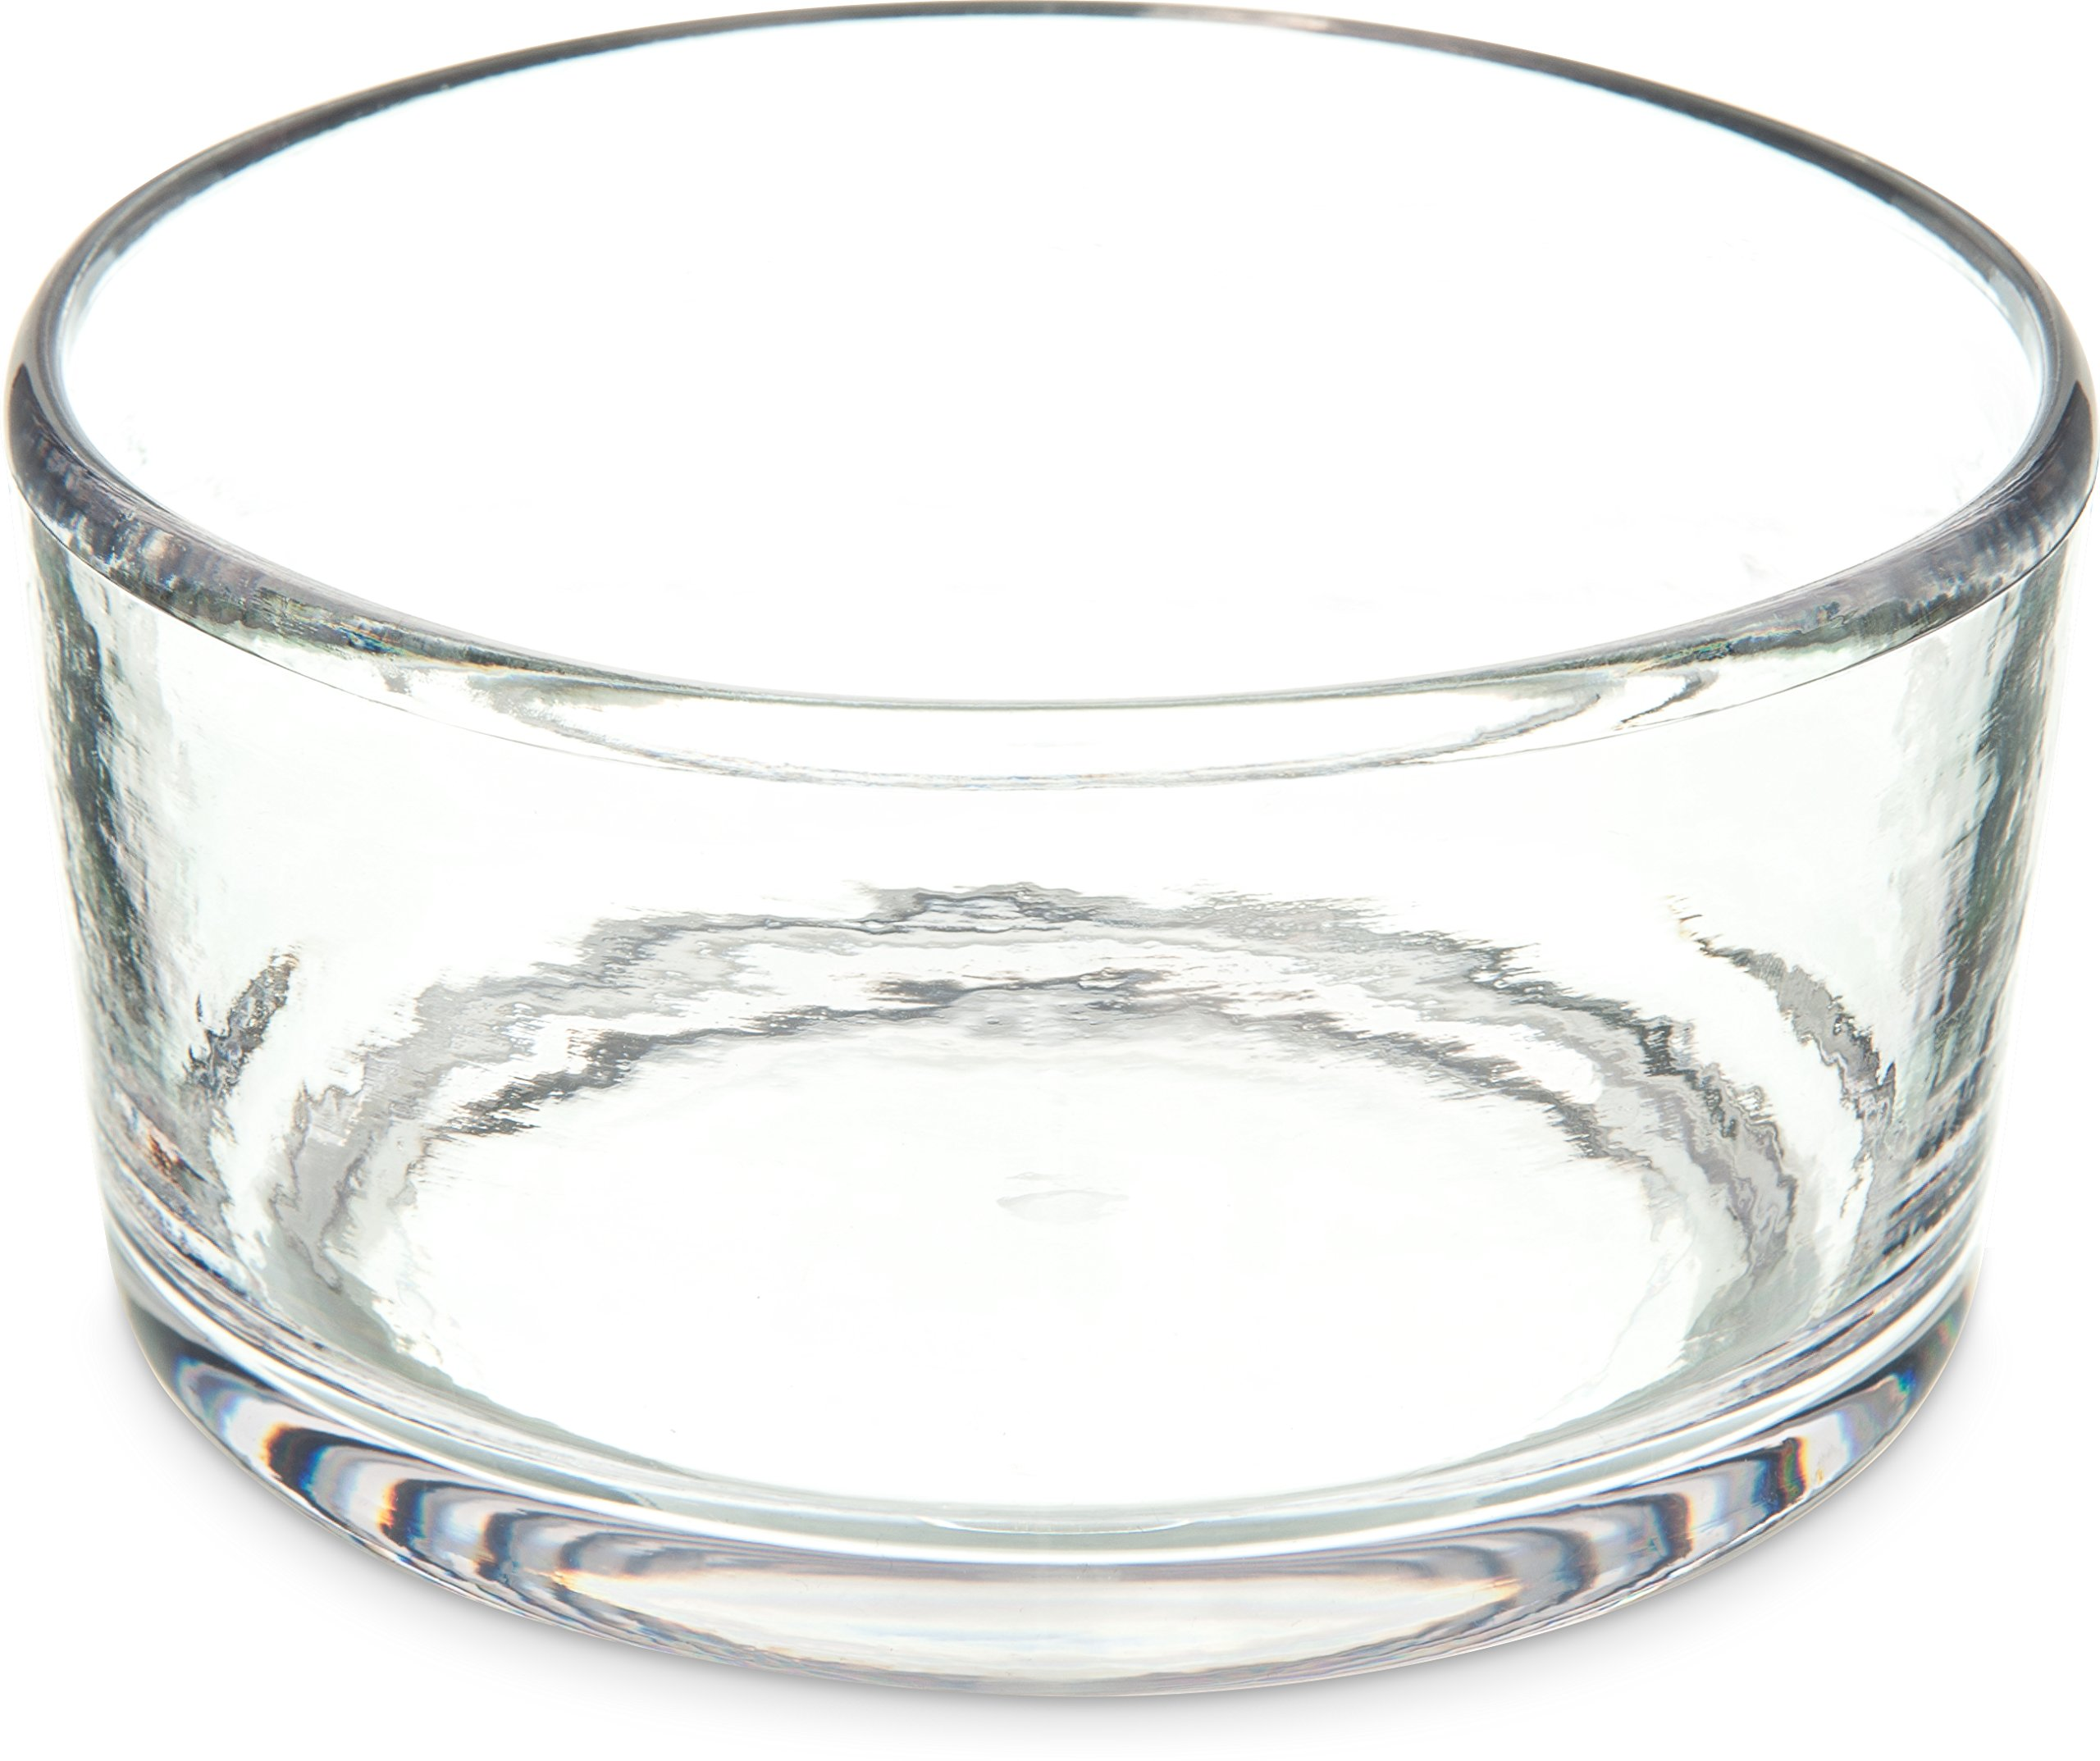 Carlisle MIN544407 Mingle Soup/ Salad/Pasta Bowl, 5'', Tritan, Clear